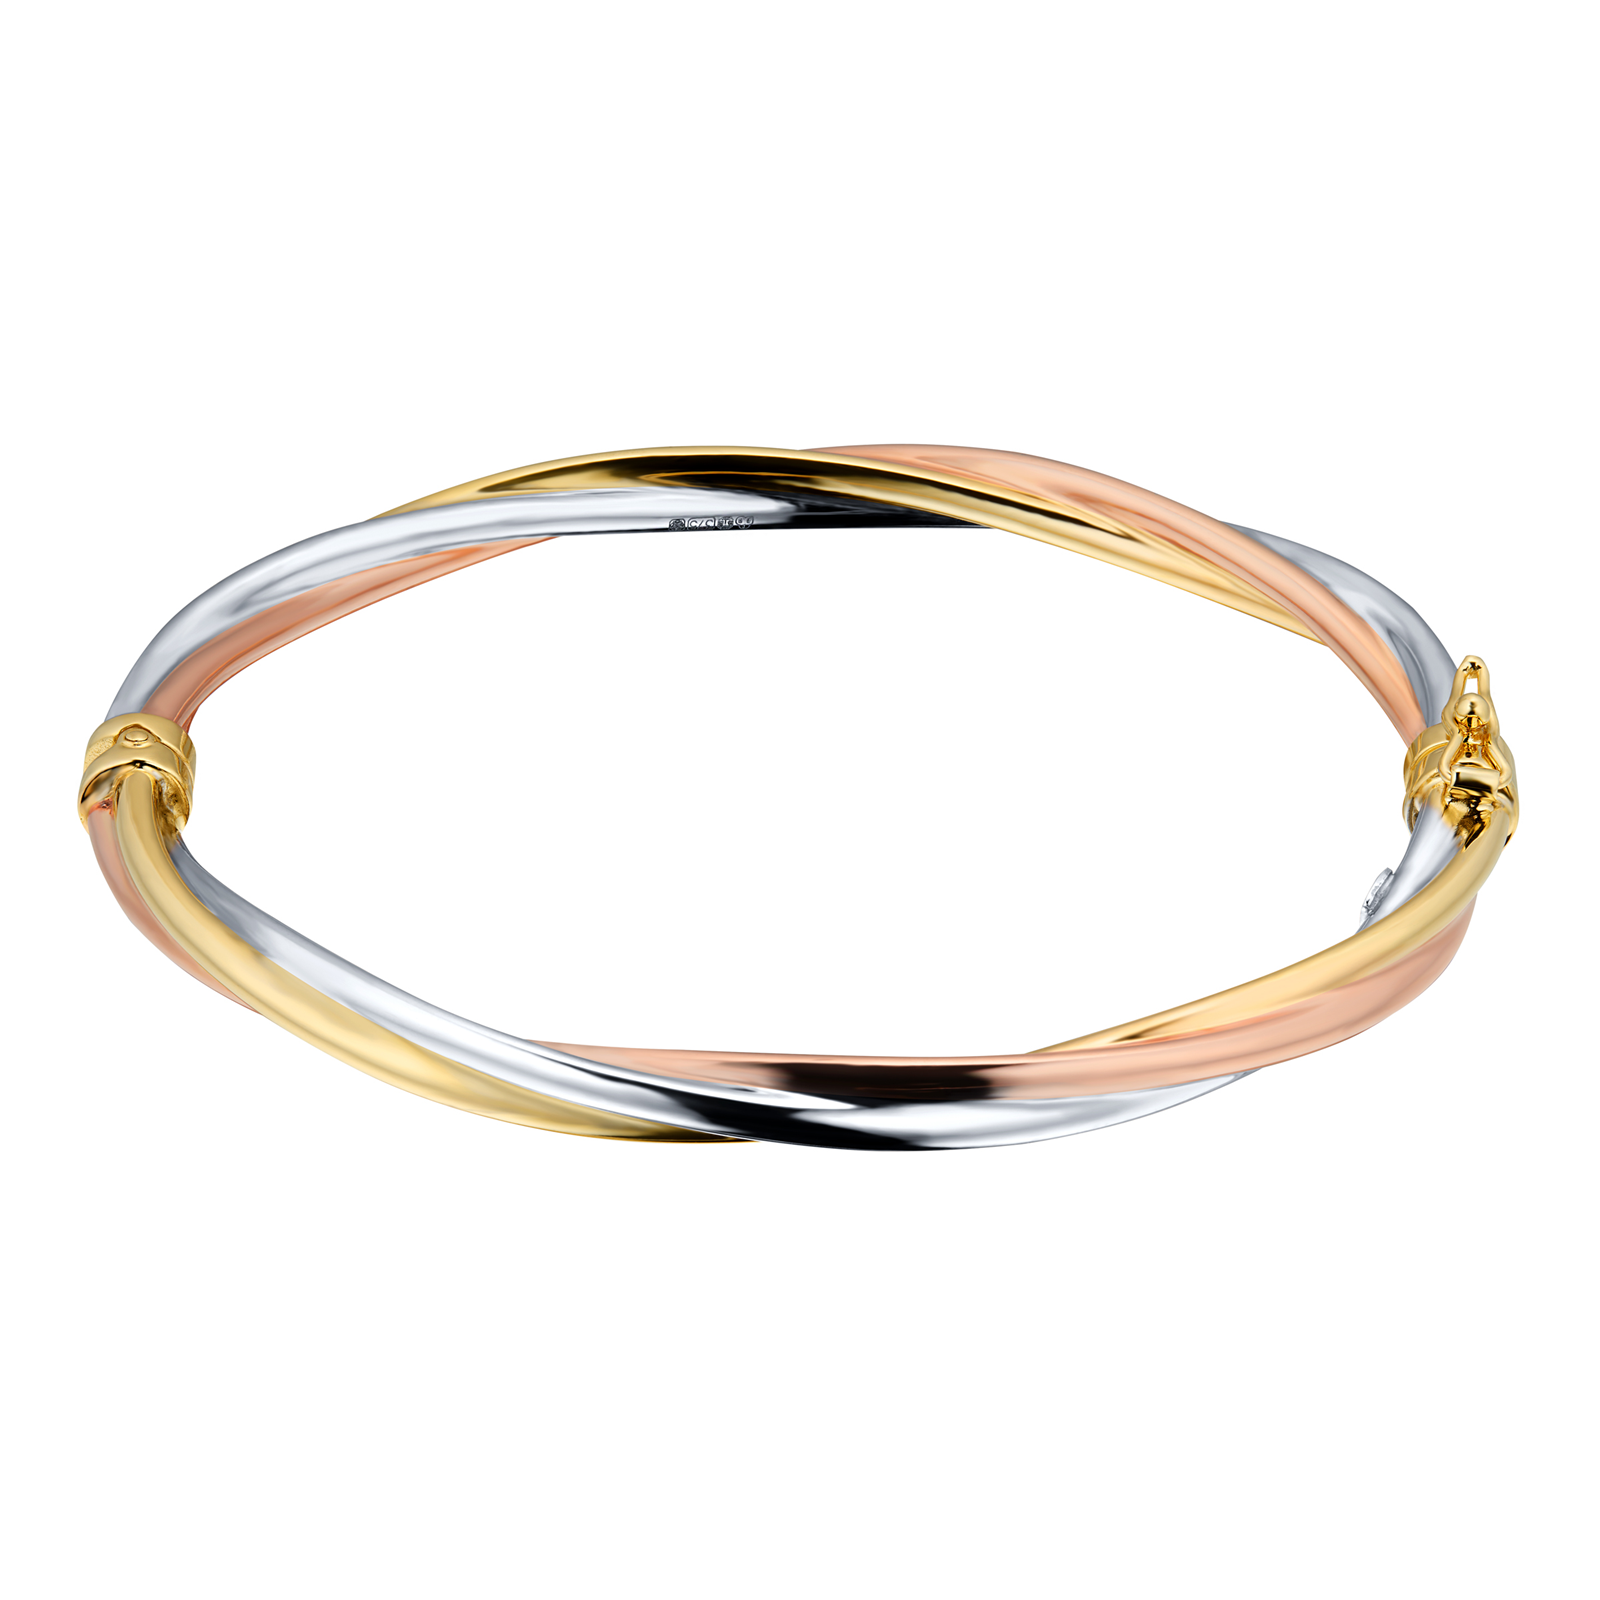 diamond bangles llumins gold bangle milano bracelet maschio with ice shop online solitaire gioielli yellow